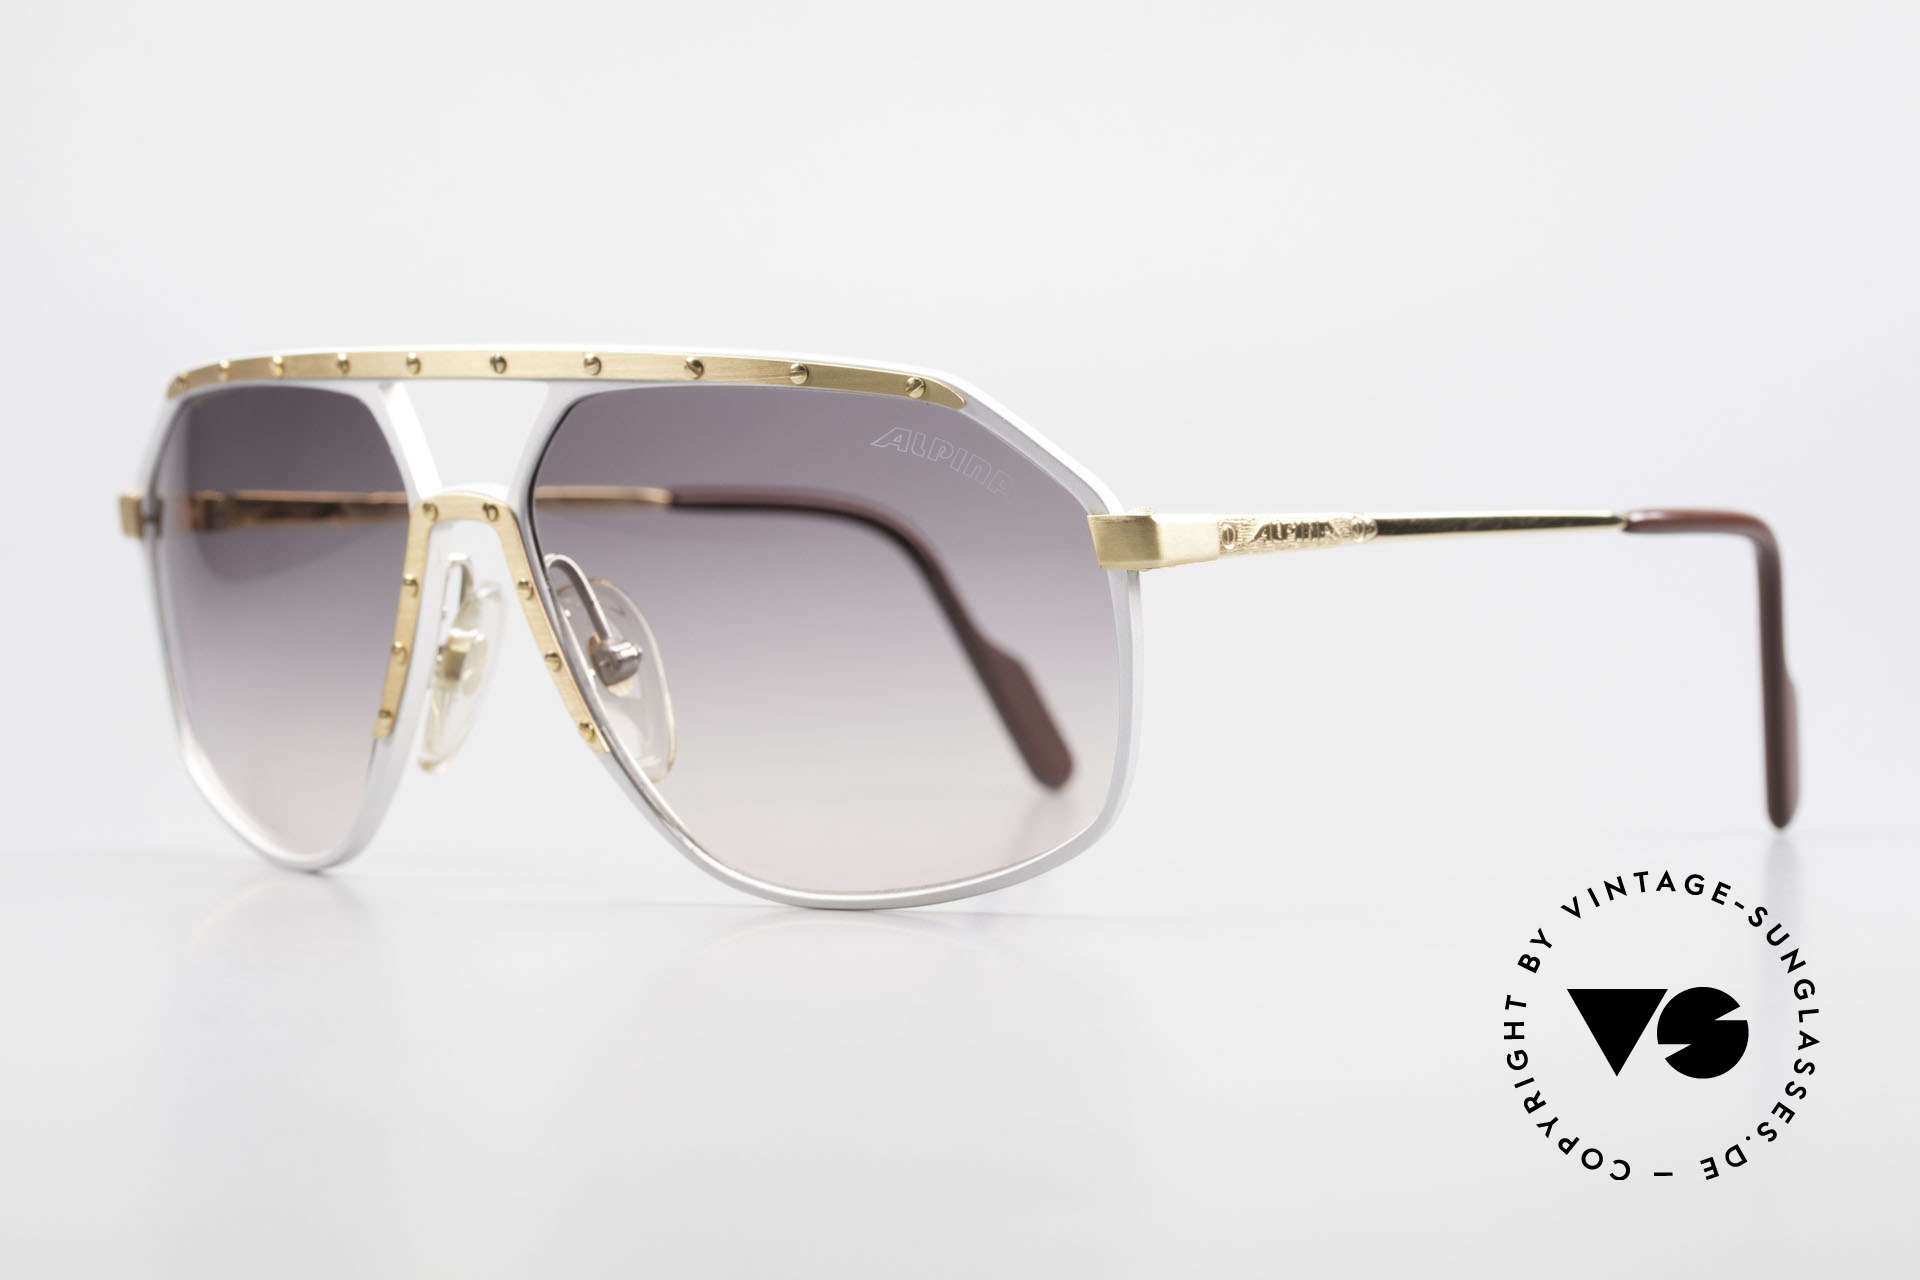 Alpina M6 Vintage Glasses Par Excellence, produced in many different variations; HANDMADE, Made for Men and Women